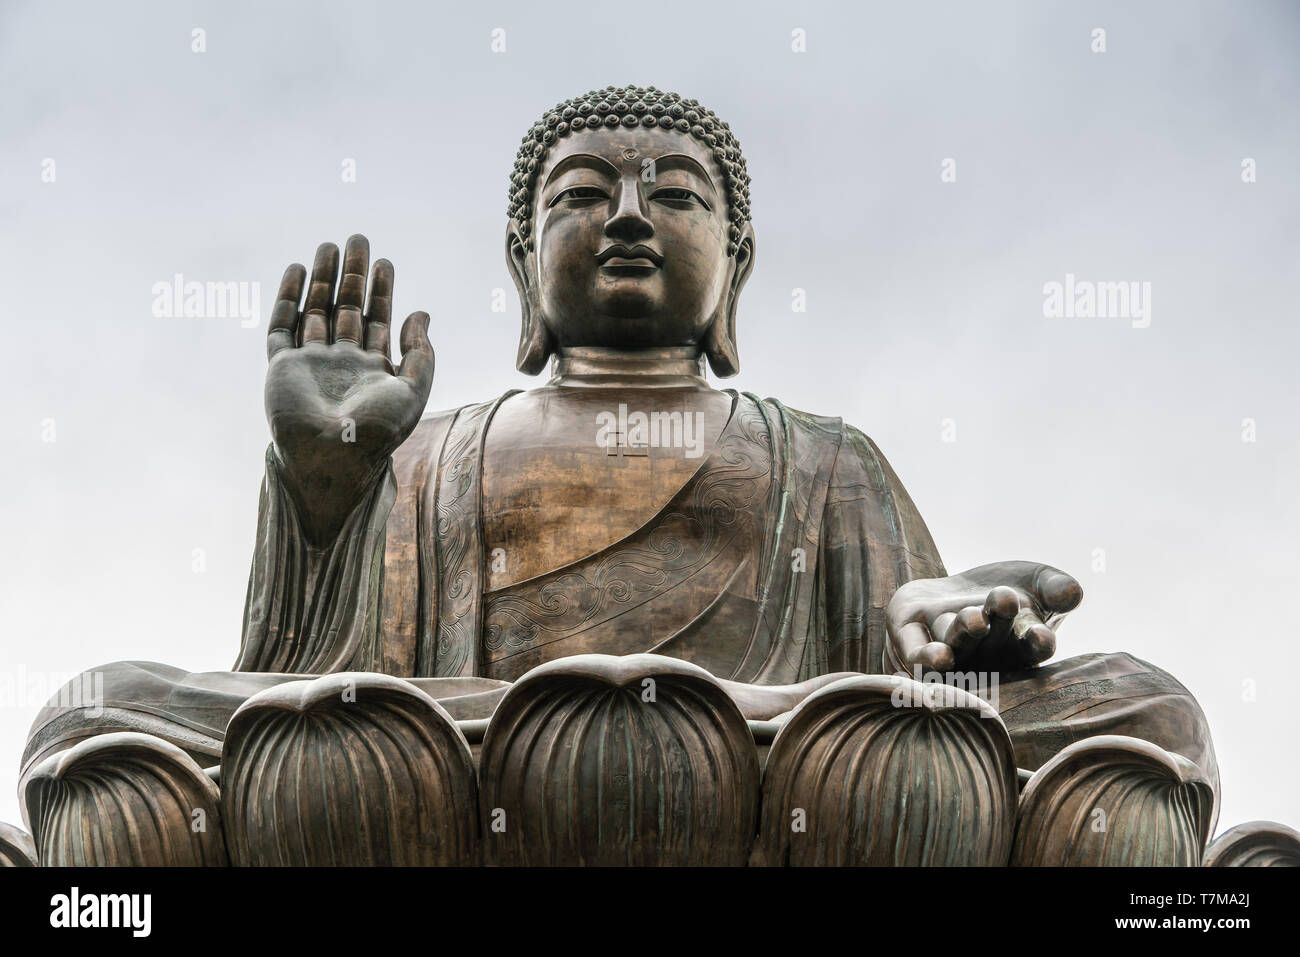 Hong Kong, China - March 7, 2019: Lantau Island. Frontal Facial closeup of Tian Tan Buddha statue from down under showing face, chest, and lotus leave - Stock Image